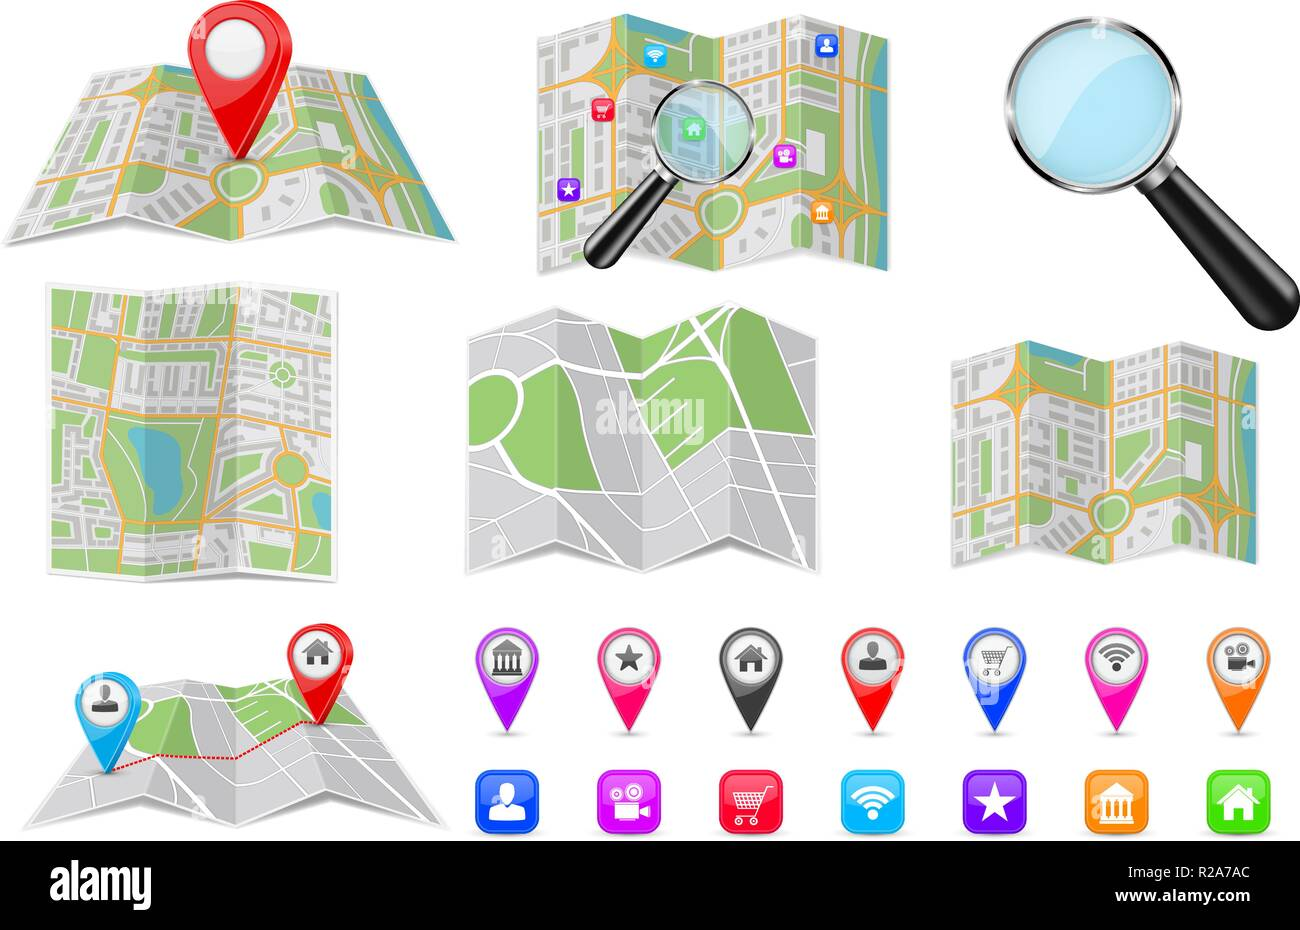 Travel tools - city maps, location markers, magnifying glass - Stock Vector